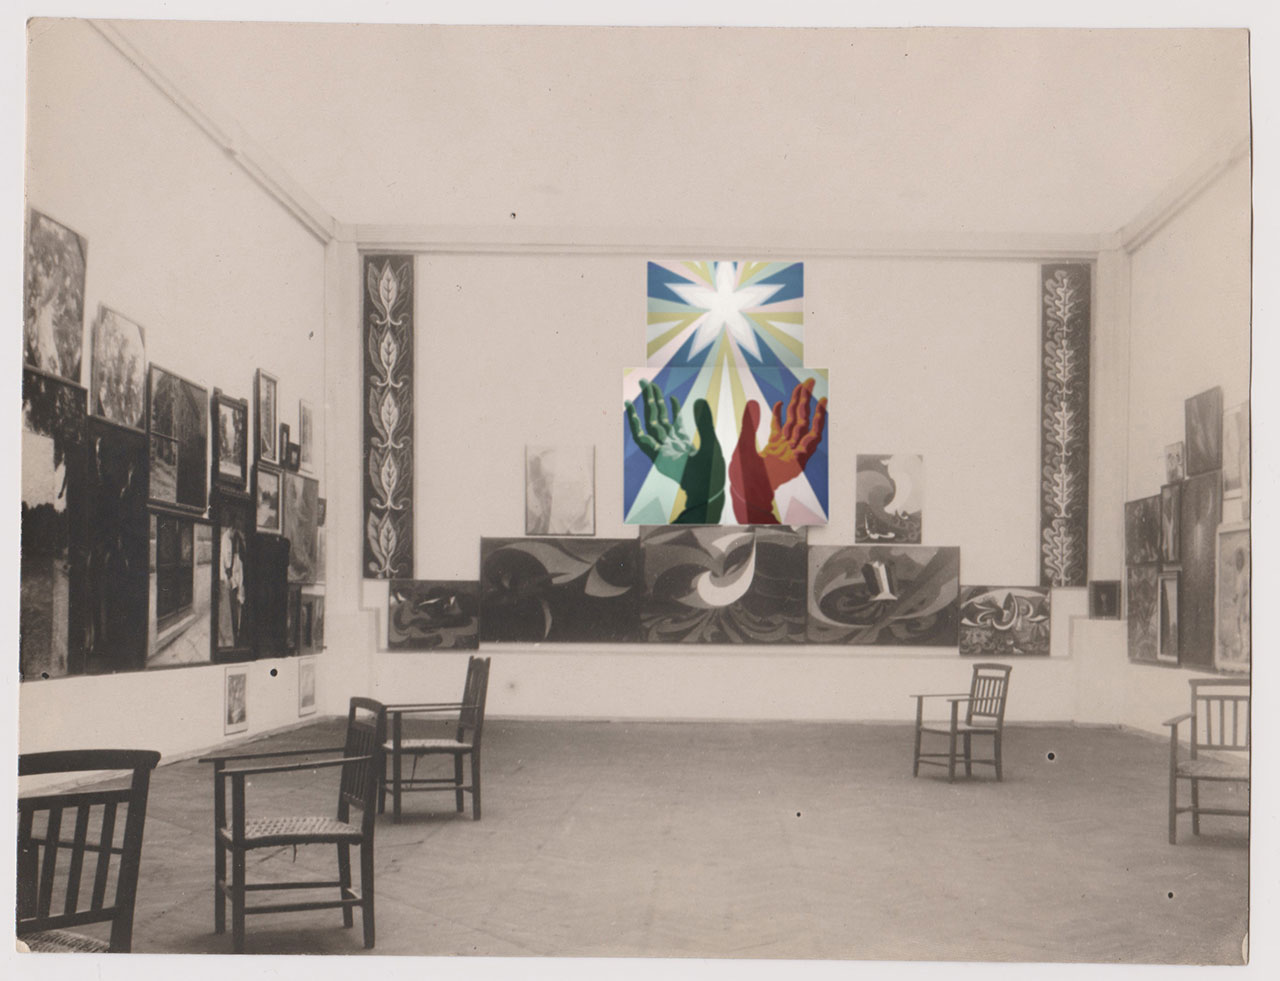 "Rendered photographic image for ""Post Zang Tumb Tuuum"" (Fondazione Prada, Milan, 2018). Photo of the Esposizione Internazionale di Belle Arti della Società Amatori e Cultori di Belle Arti in Roma, room VII Amatori e Cultori, 1928. Among the exhibited works: Quadro fascista (also known as Le mani del popolo italiano) (1925) by Giacomo Balla - For the work © Giacomo Balla by SIAE 2018."